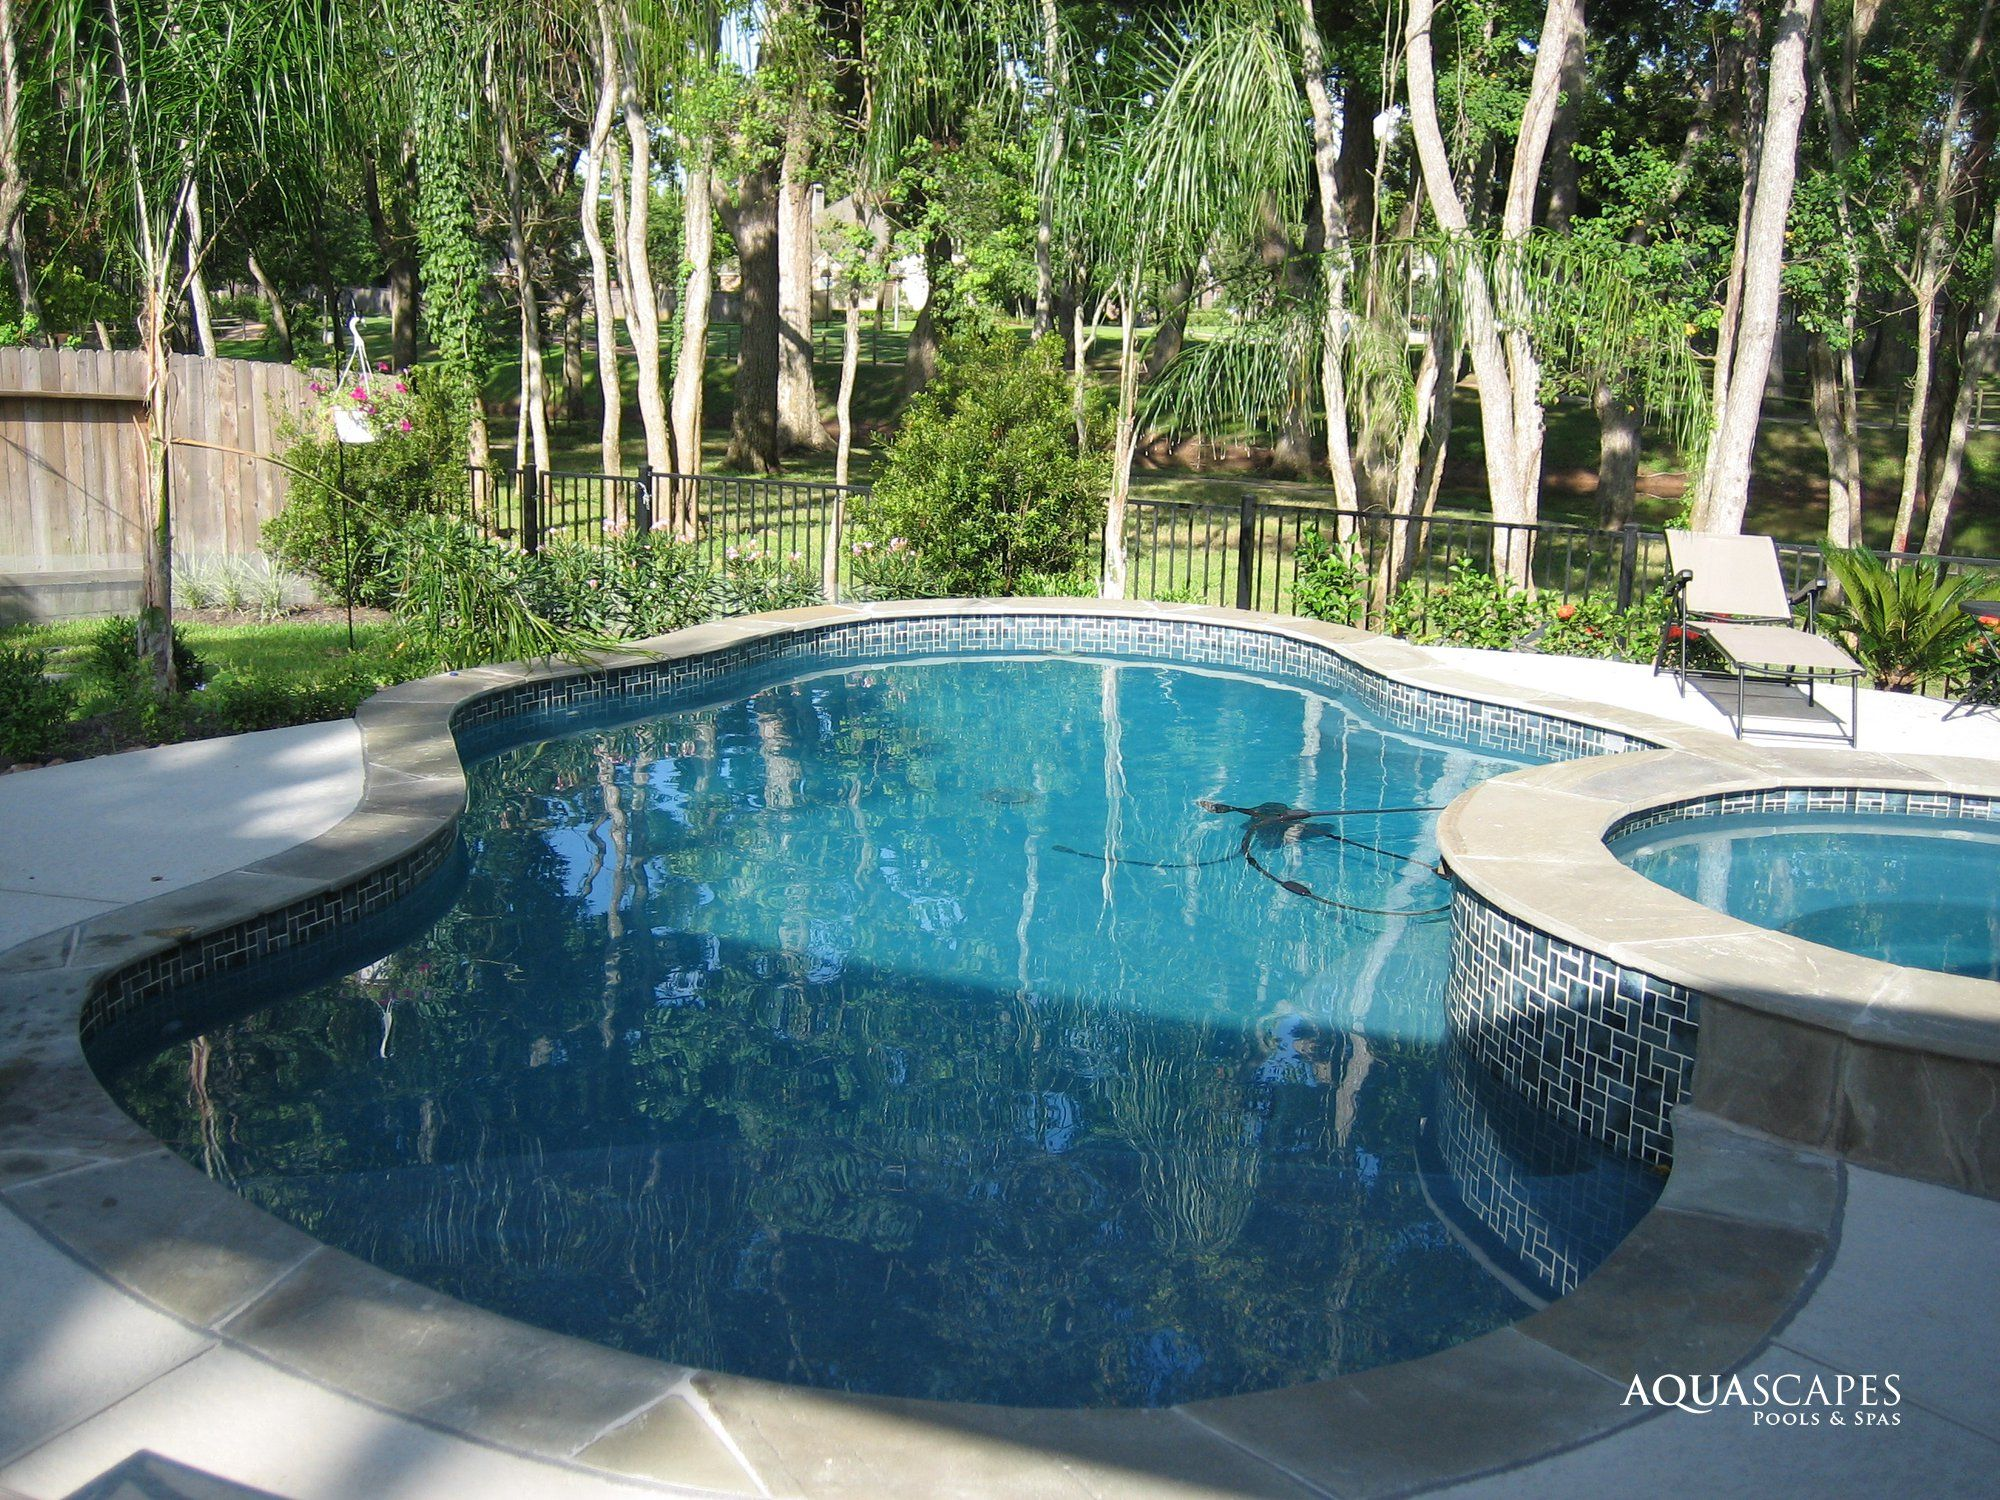 Custom Pools and Spas | Pool, Spa pool, Custom pools